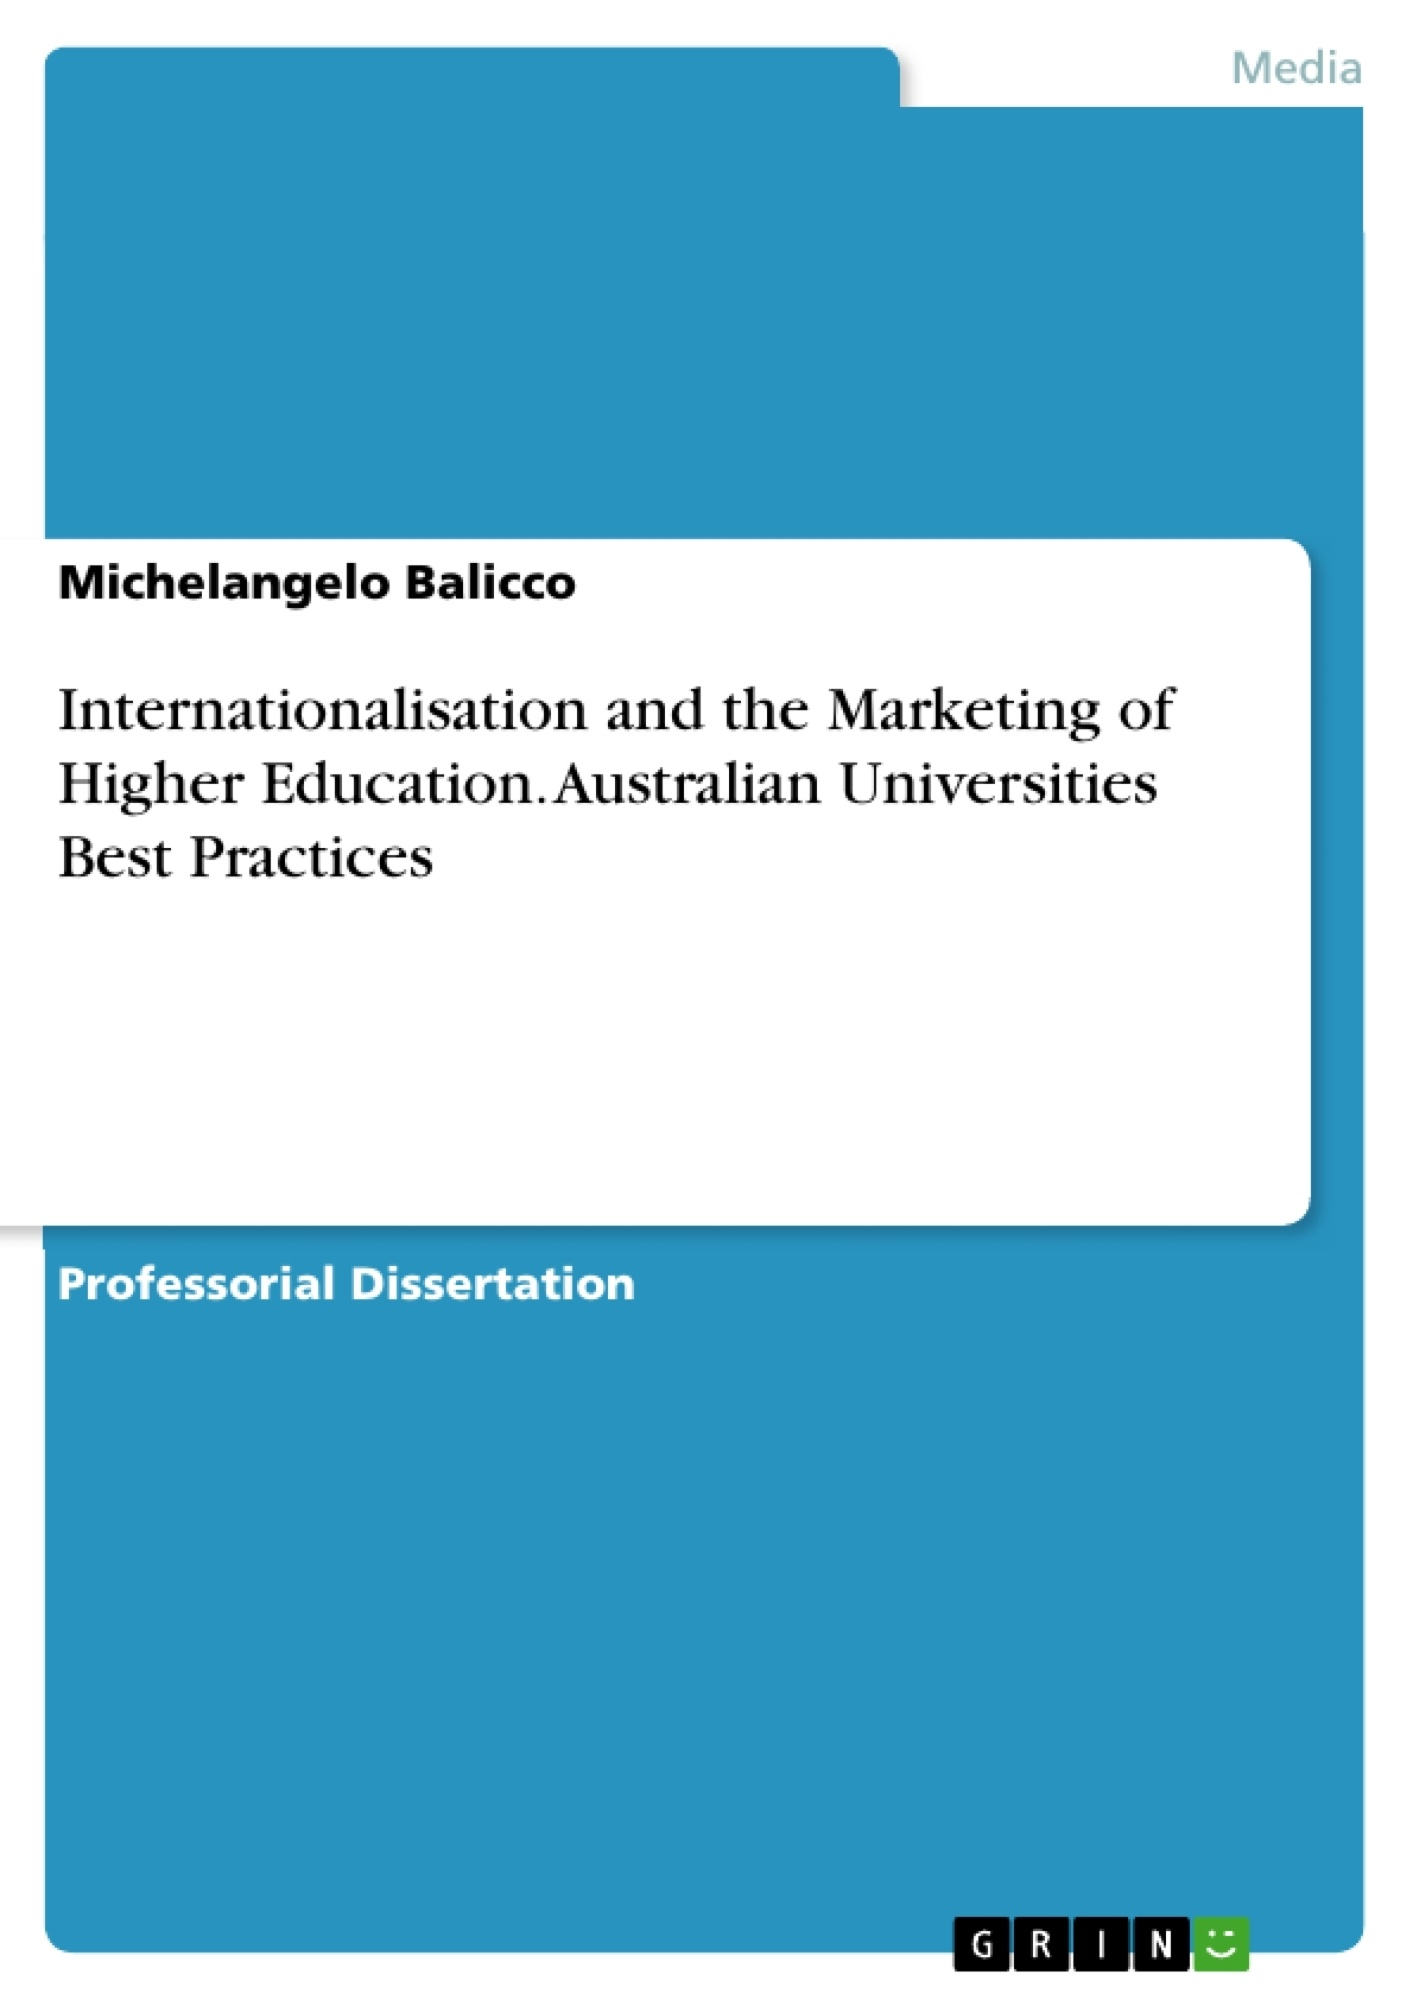 Title: Internationalisation and the Marketing of Higher Education. Australian Universities Best Practices